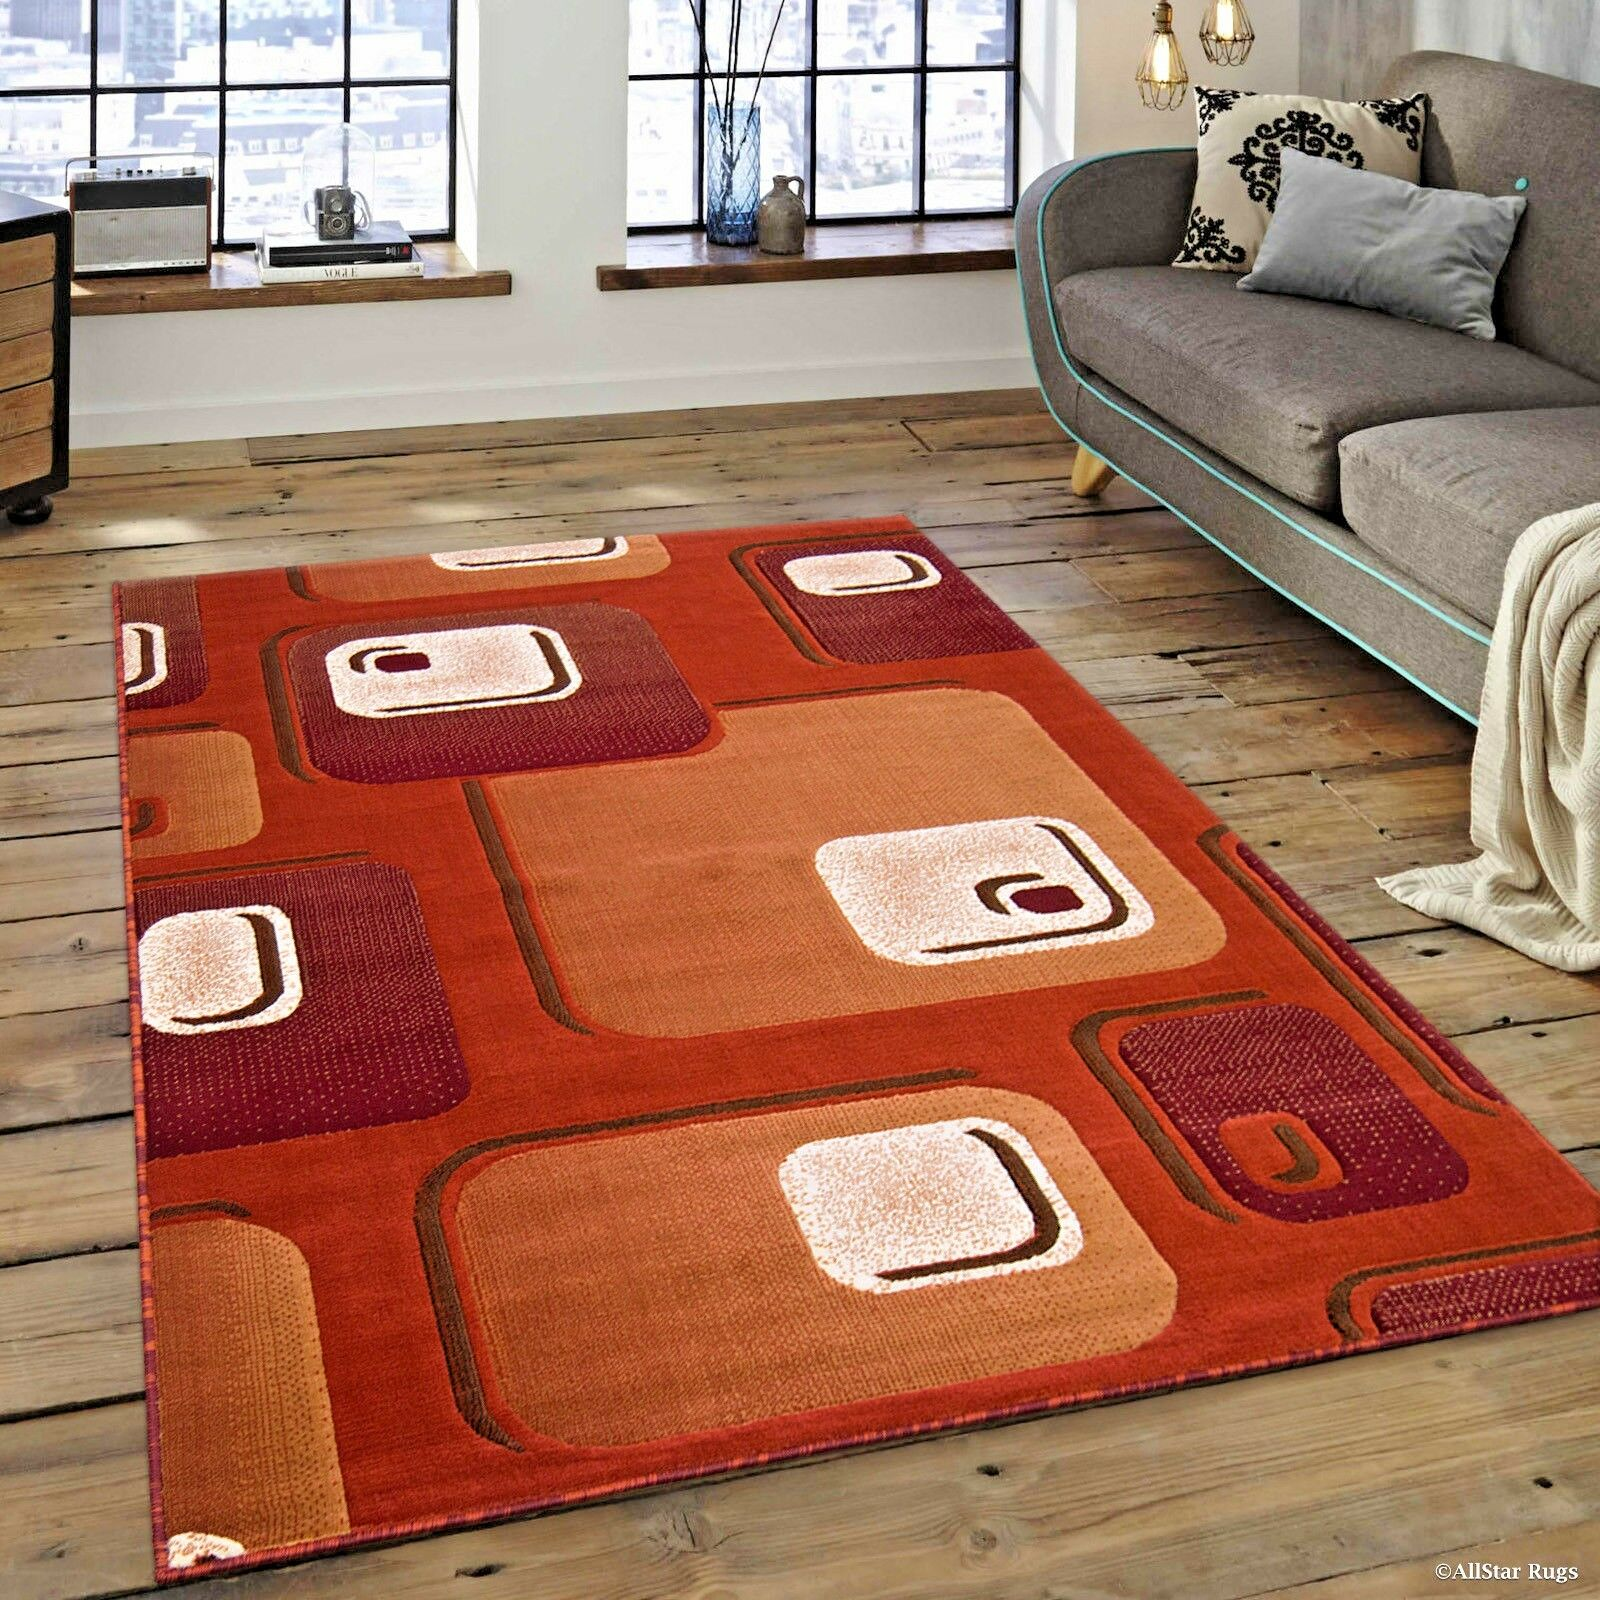 Details about RUGS AREA RUGS CARPETS 8x10 AREA RUG MODERN BIG LARGE ROOM  COOL FLOOR RED RUGS ⭐